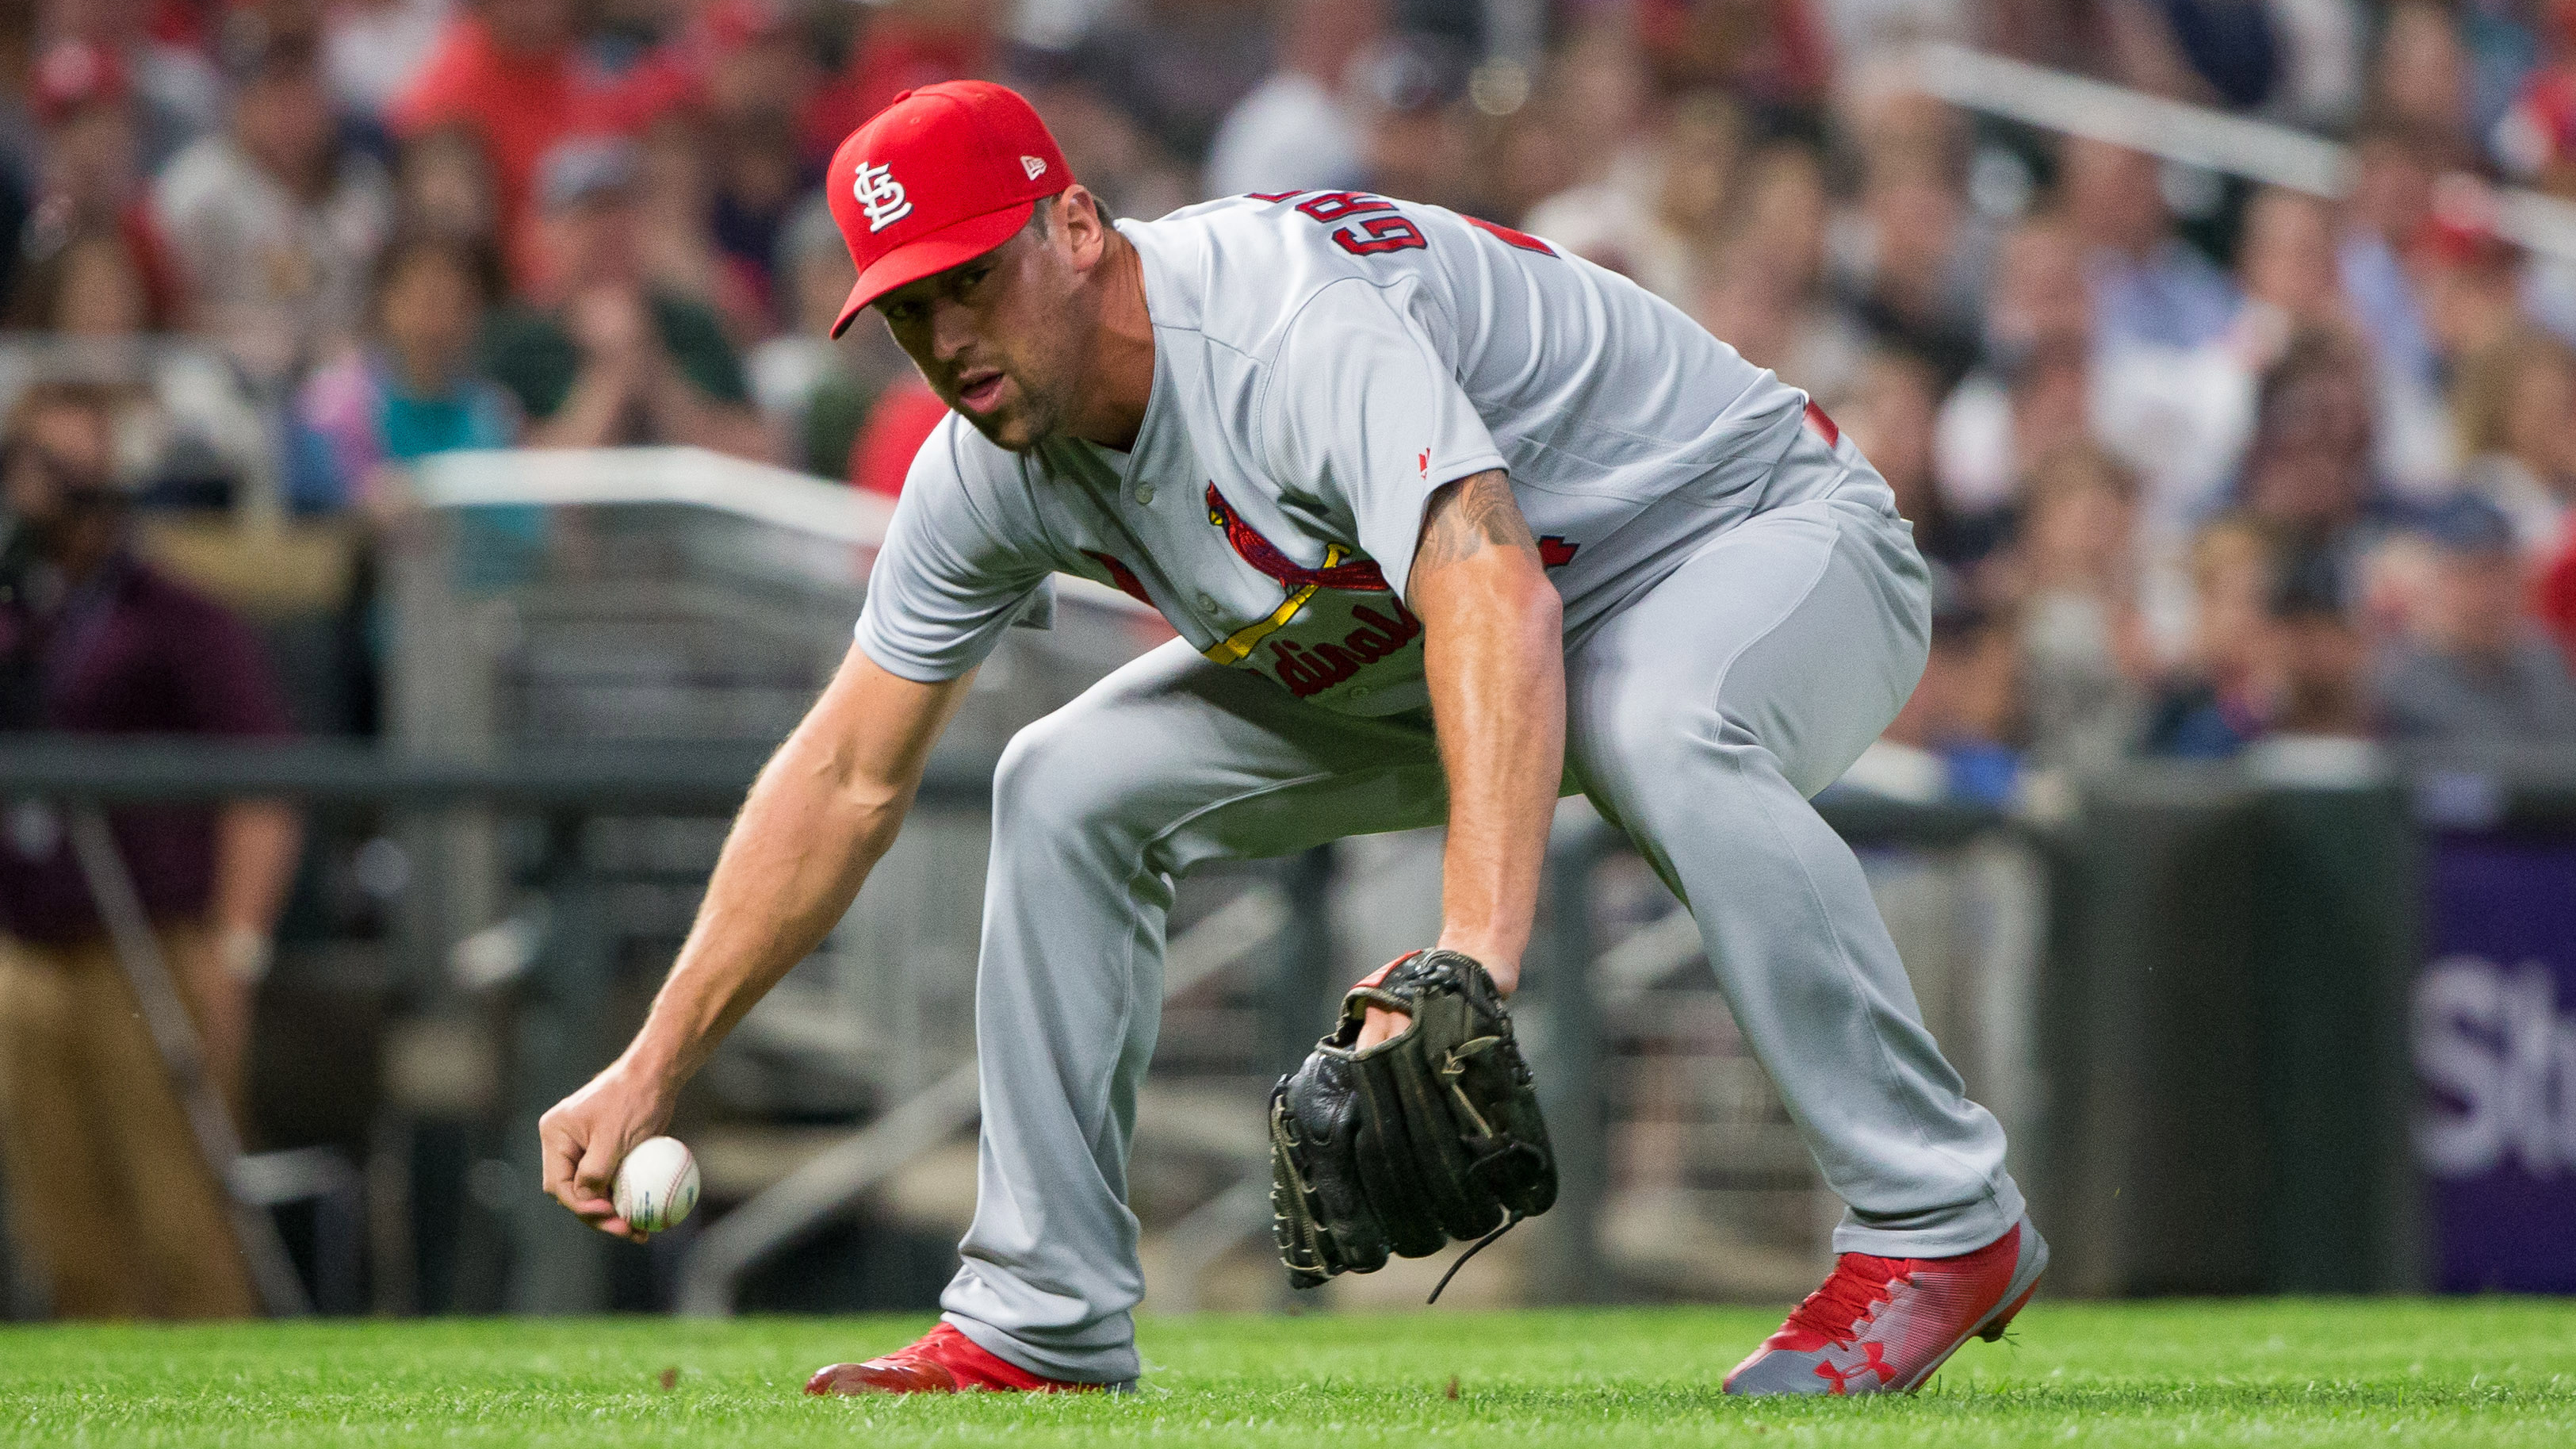 Cardinals activate Gregerson and Lyons, option Weaver and Brebbia to Memphis